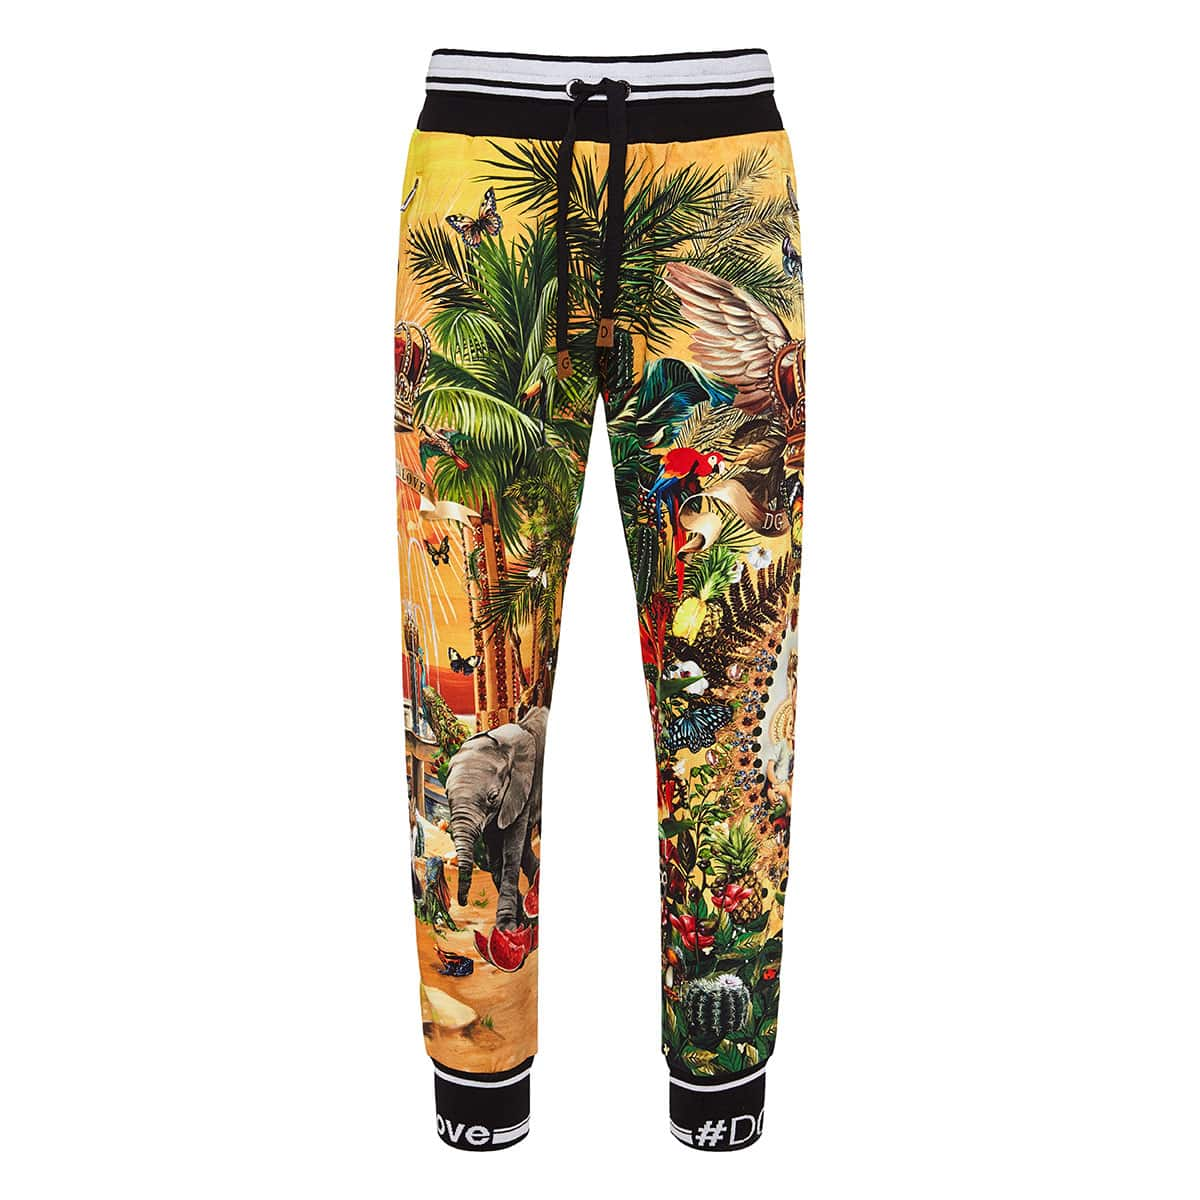 Tropical printed track trousers